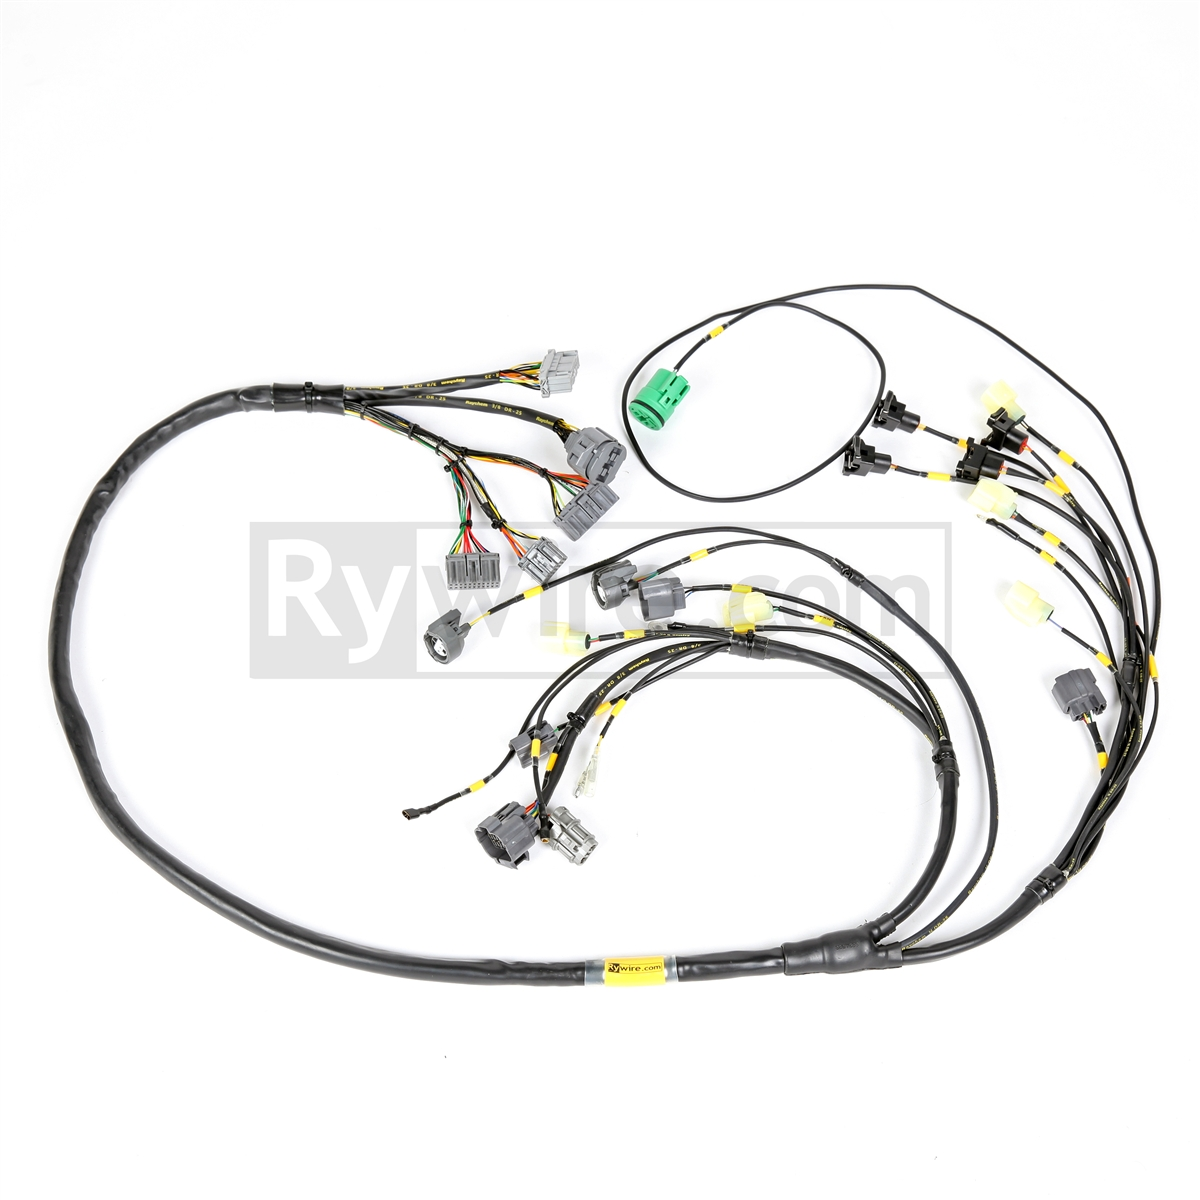 Free download wiring diagram rywire mil spec f series f20b h series h22 harness of